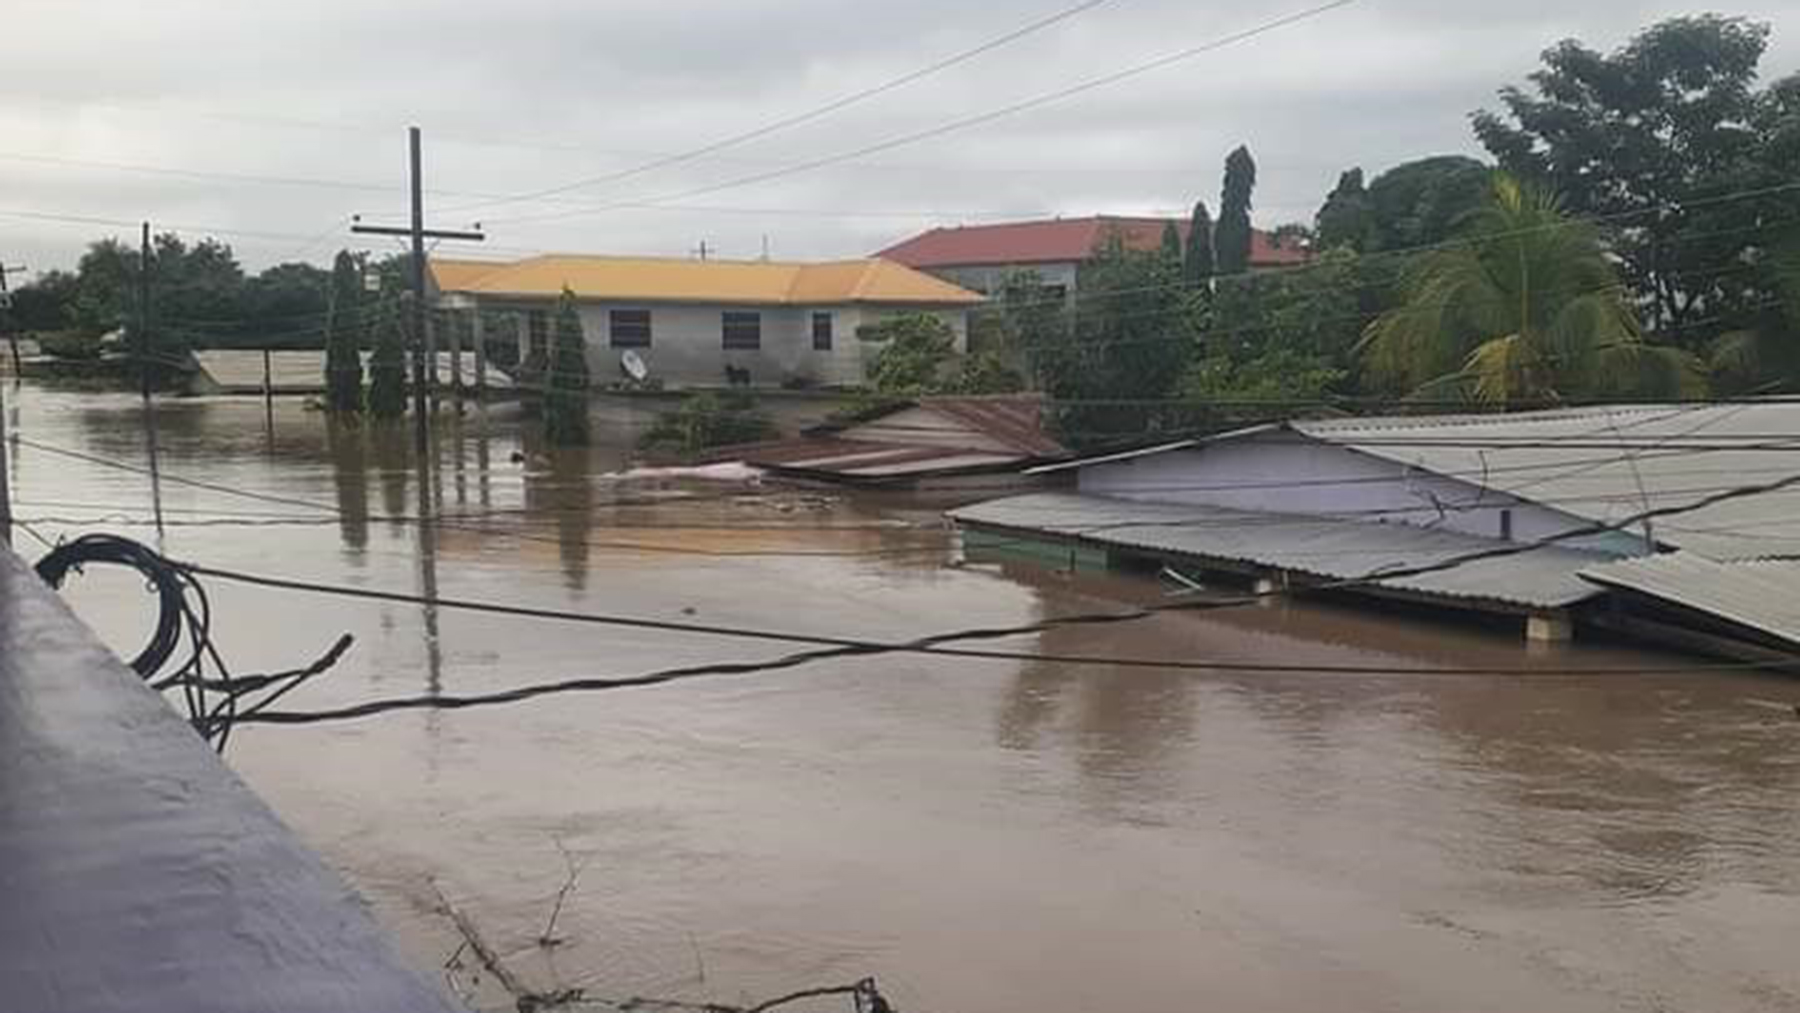 Hurricane Iota, a Category 4 storm, left whole neighborhoods underwater in Honduras. (Photo courtesy of Dr. Alexander Sánchez Paz)